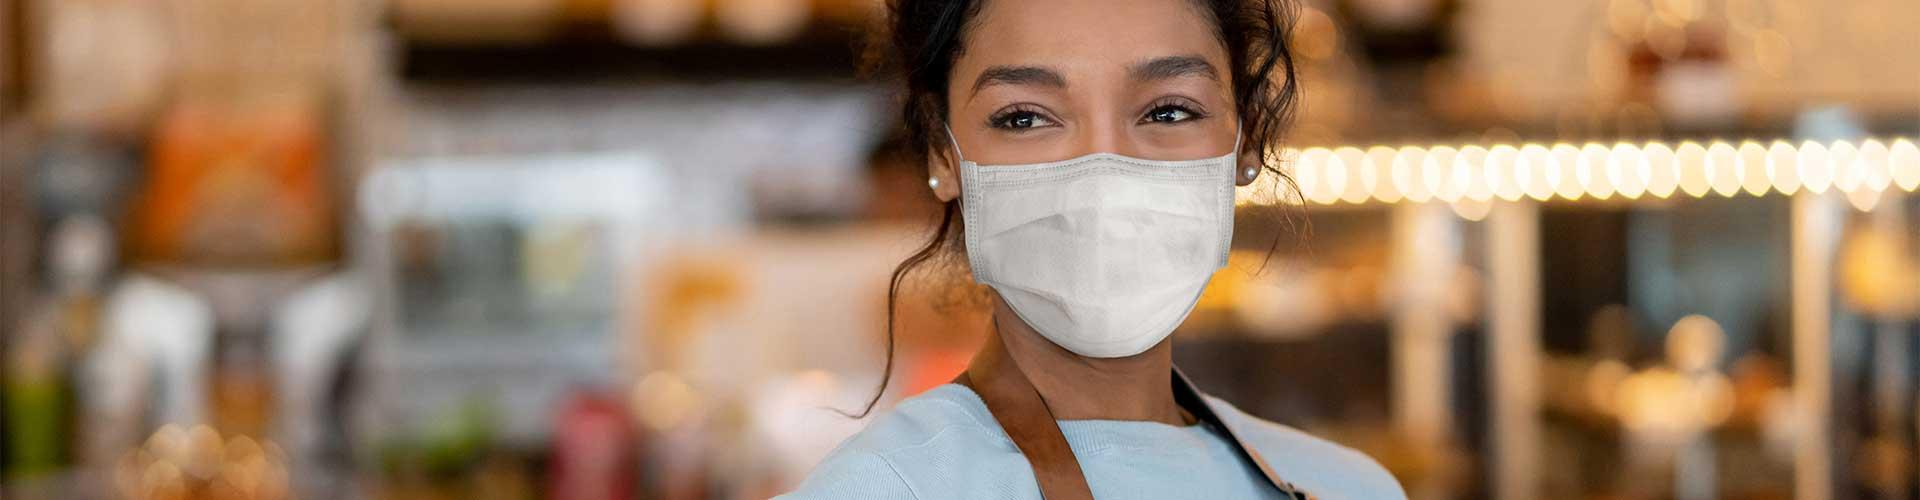 Young woman in mask stands in store